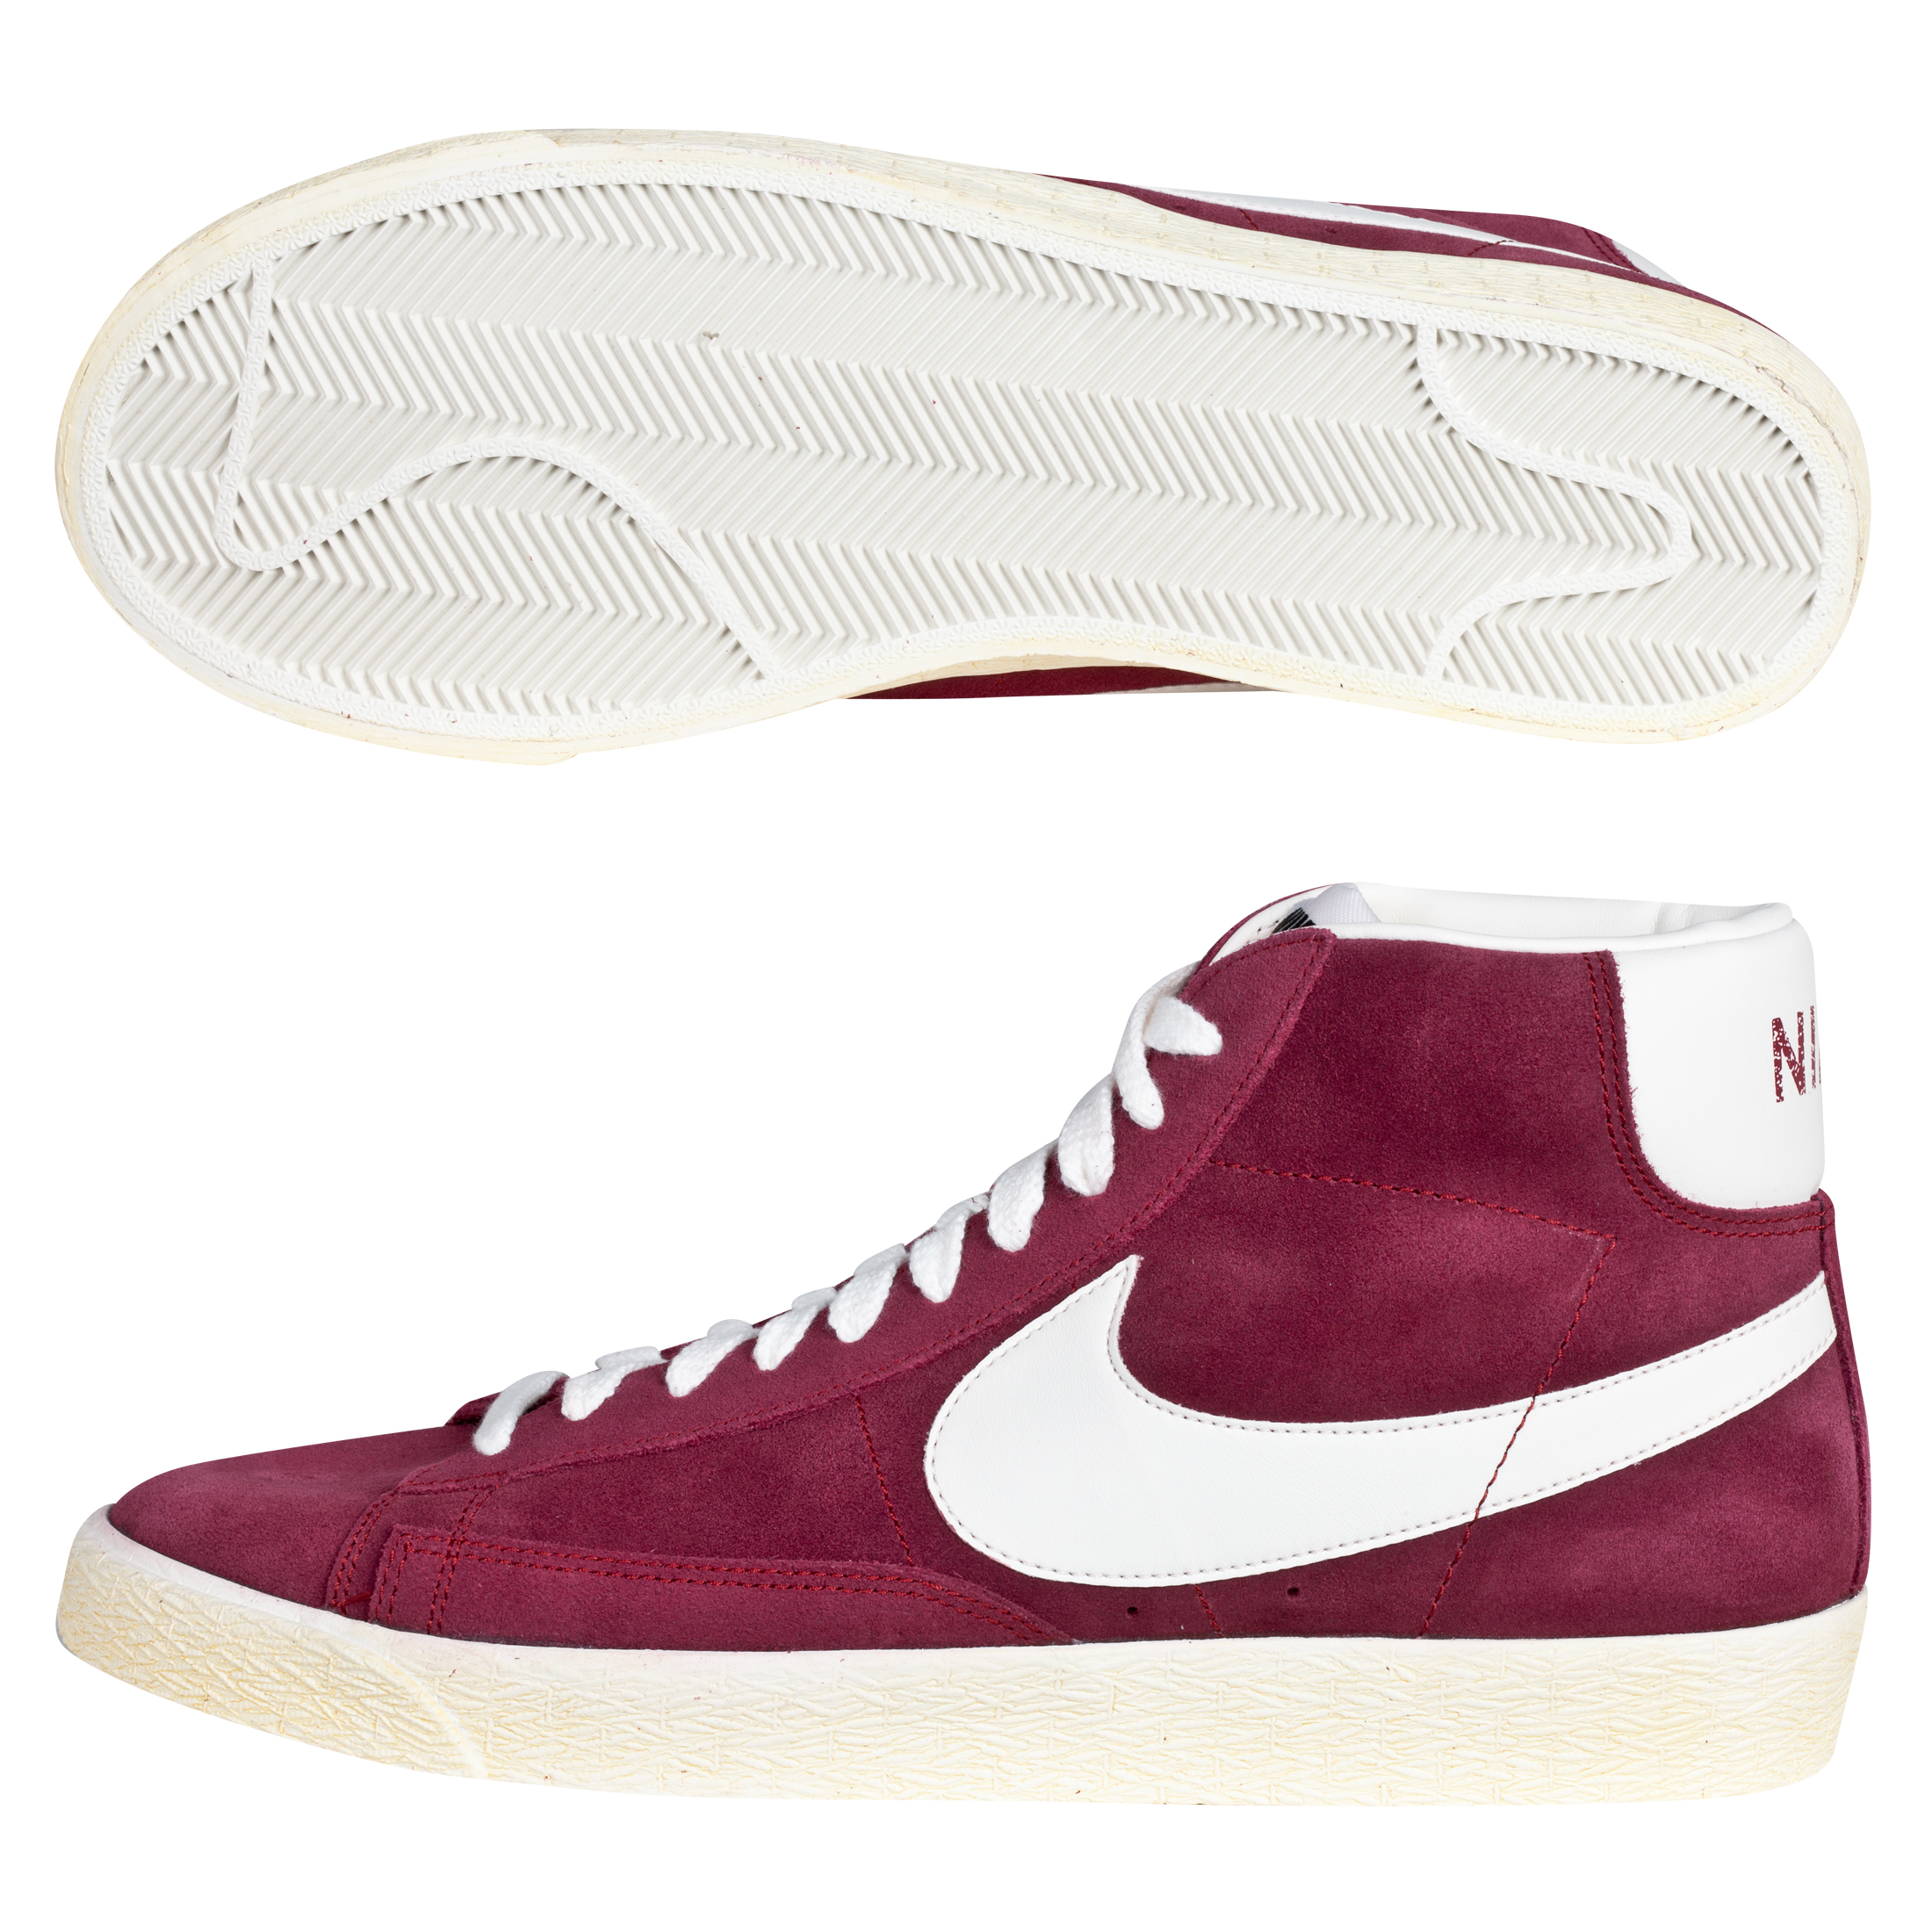 Nike Blazer Mid Vintage Suede Trainers - Team Red/Sail